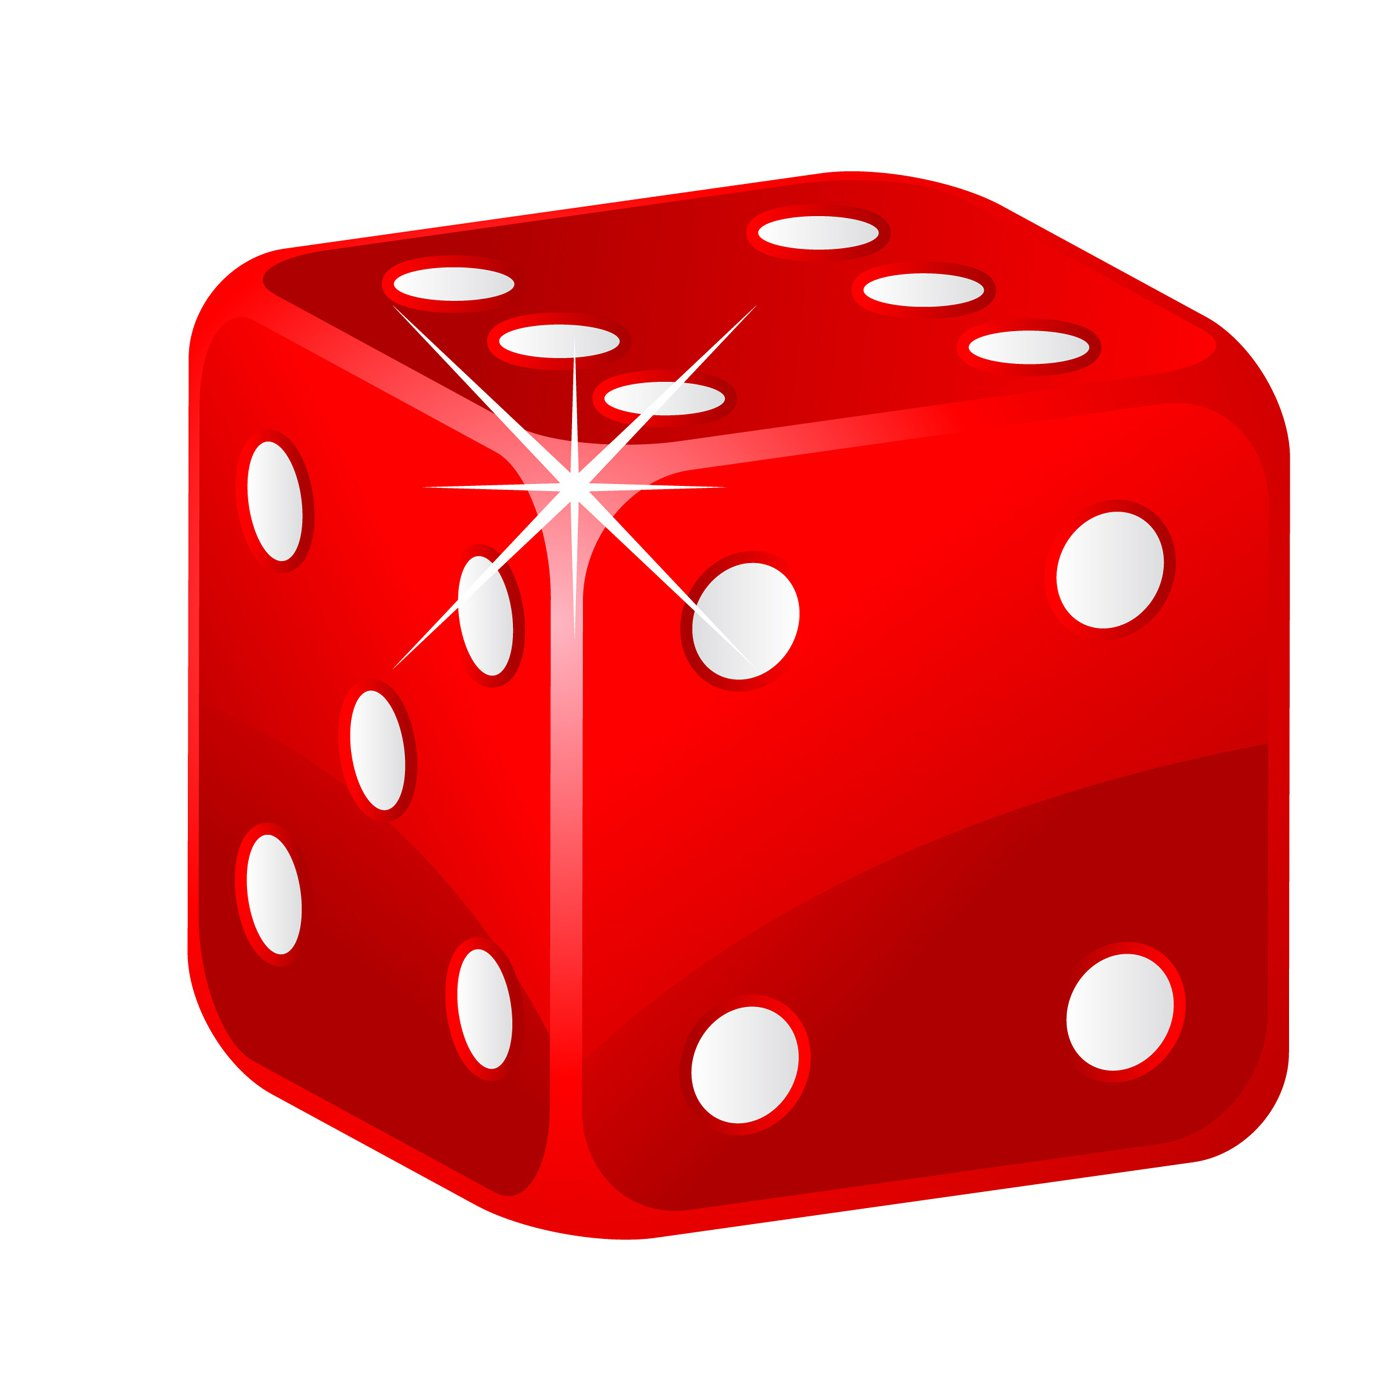 Free Dice Faces, Download Free Clip Art, Free Clip Art on.